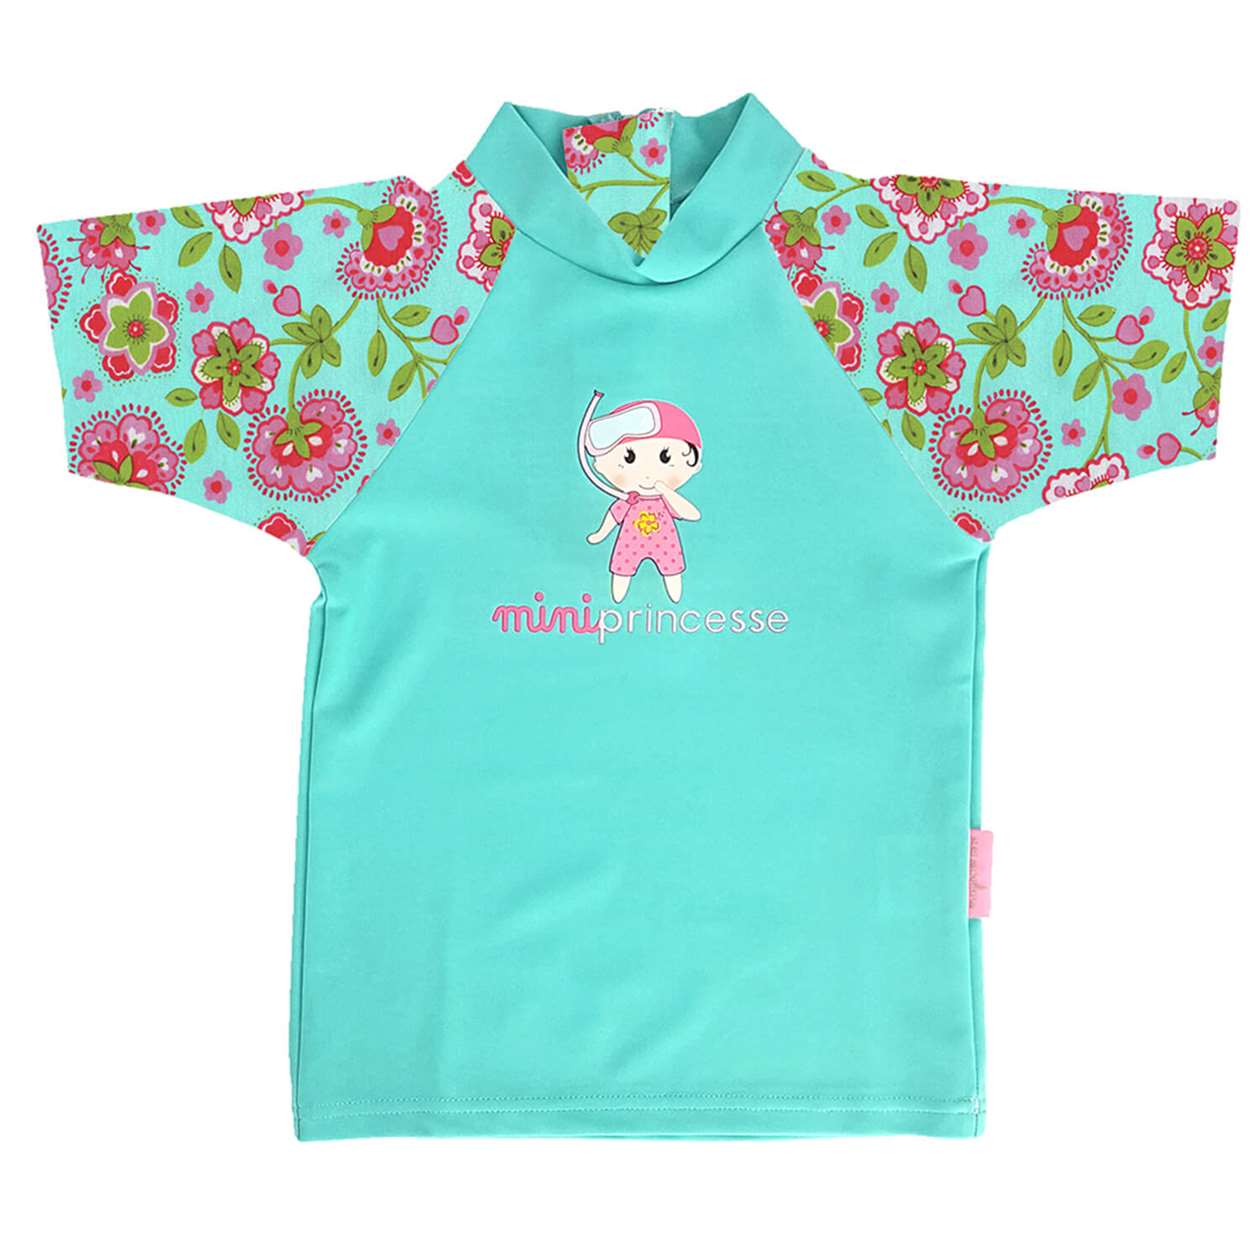 BeeBoo|BeeBoo Mayoparasol T Shirt Mini Princess anti uv vert